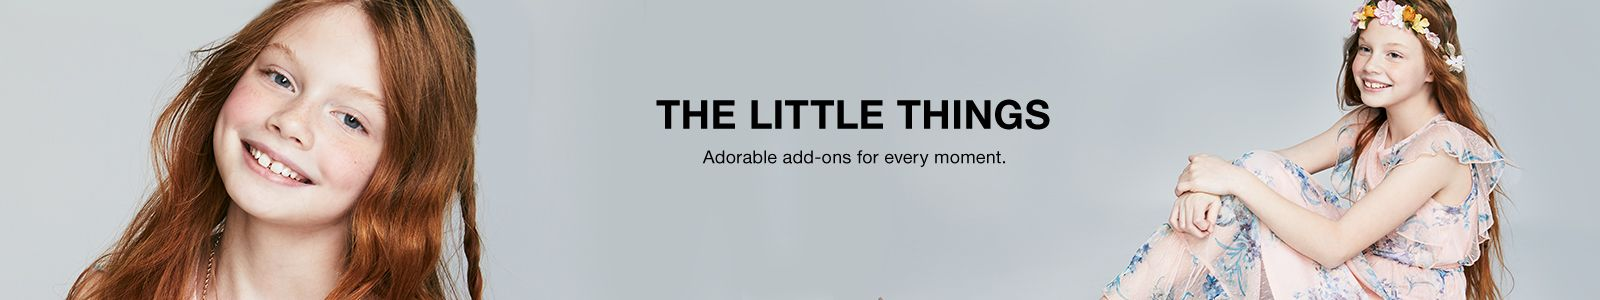 The Little Things, Adorable add-ons for every moment